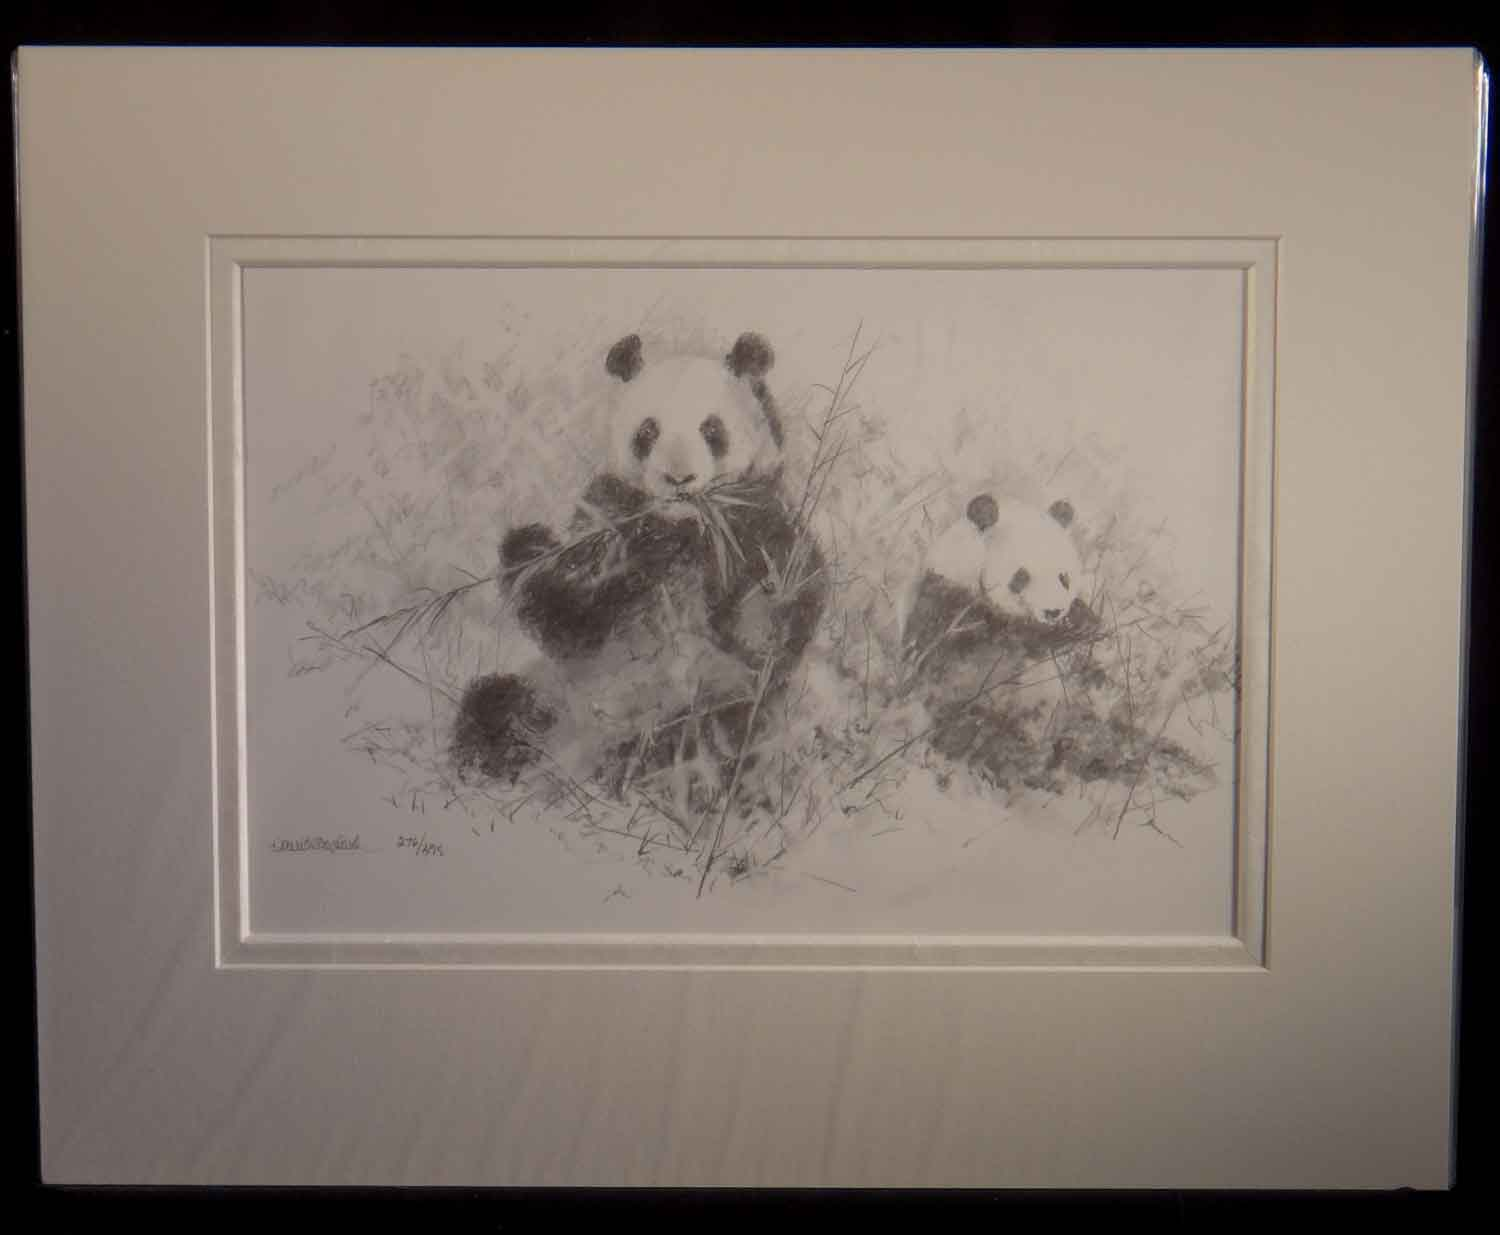 david shepherd, pandas, pencil, sketch, drawing